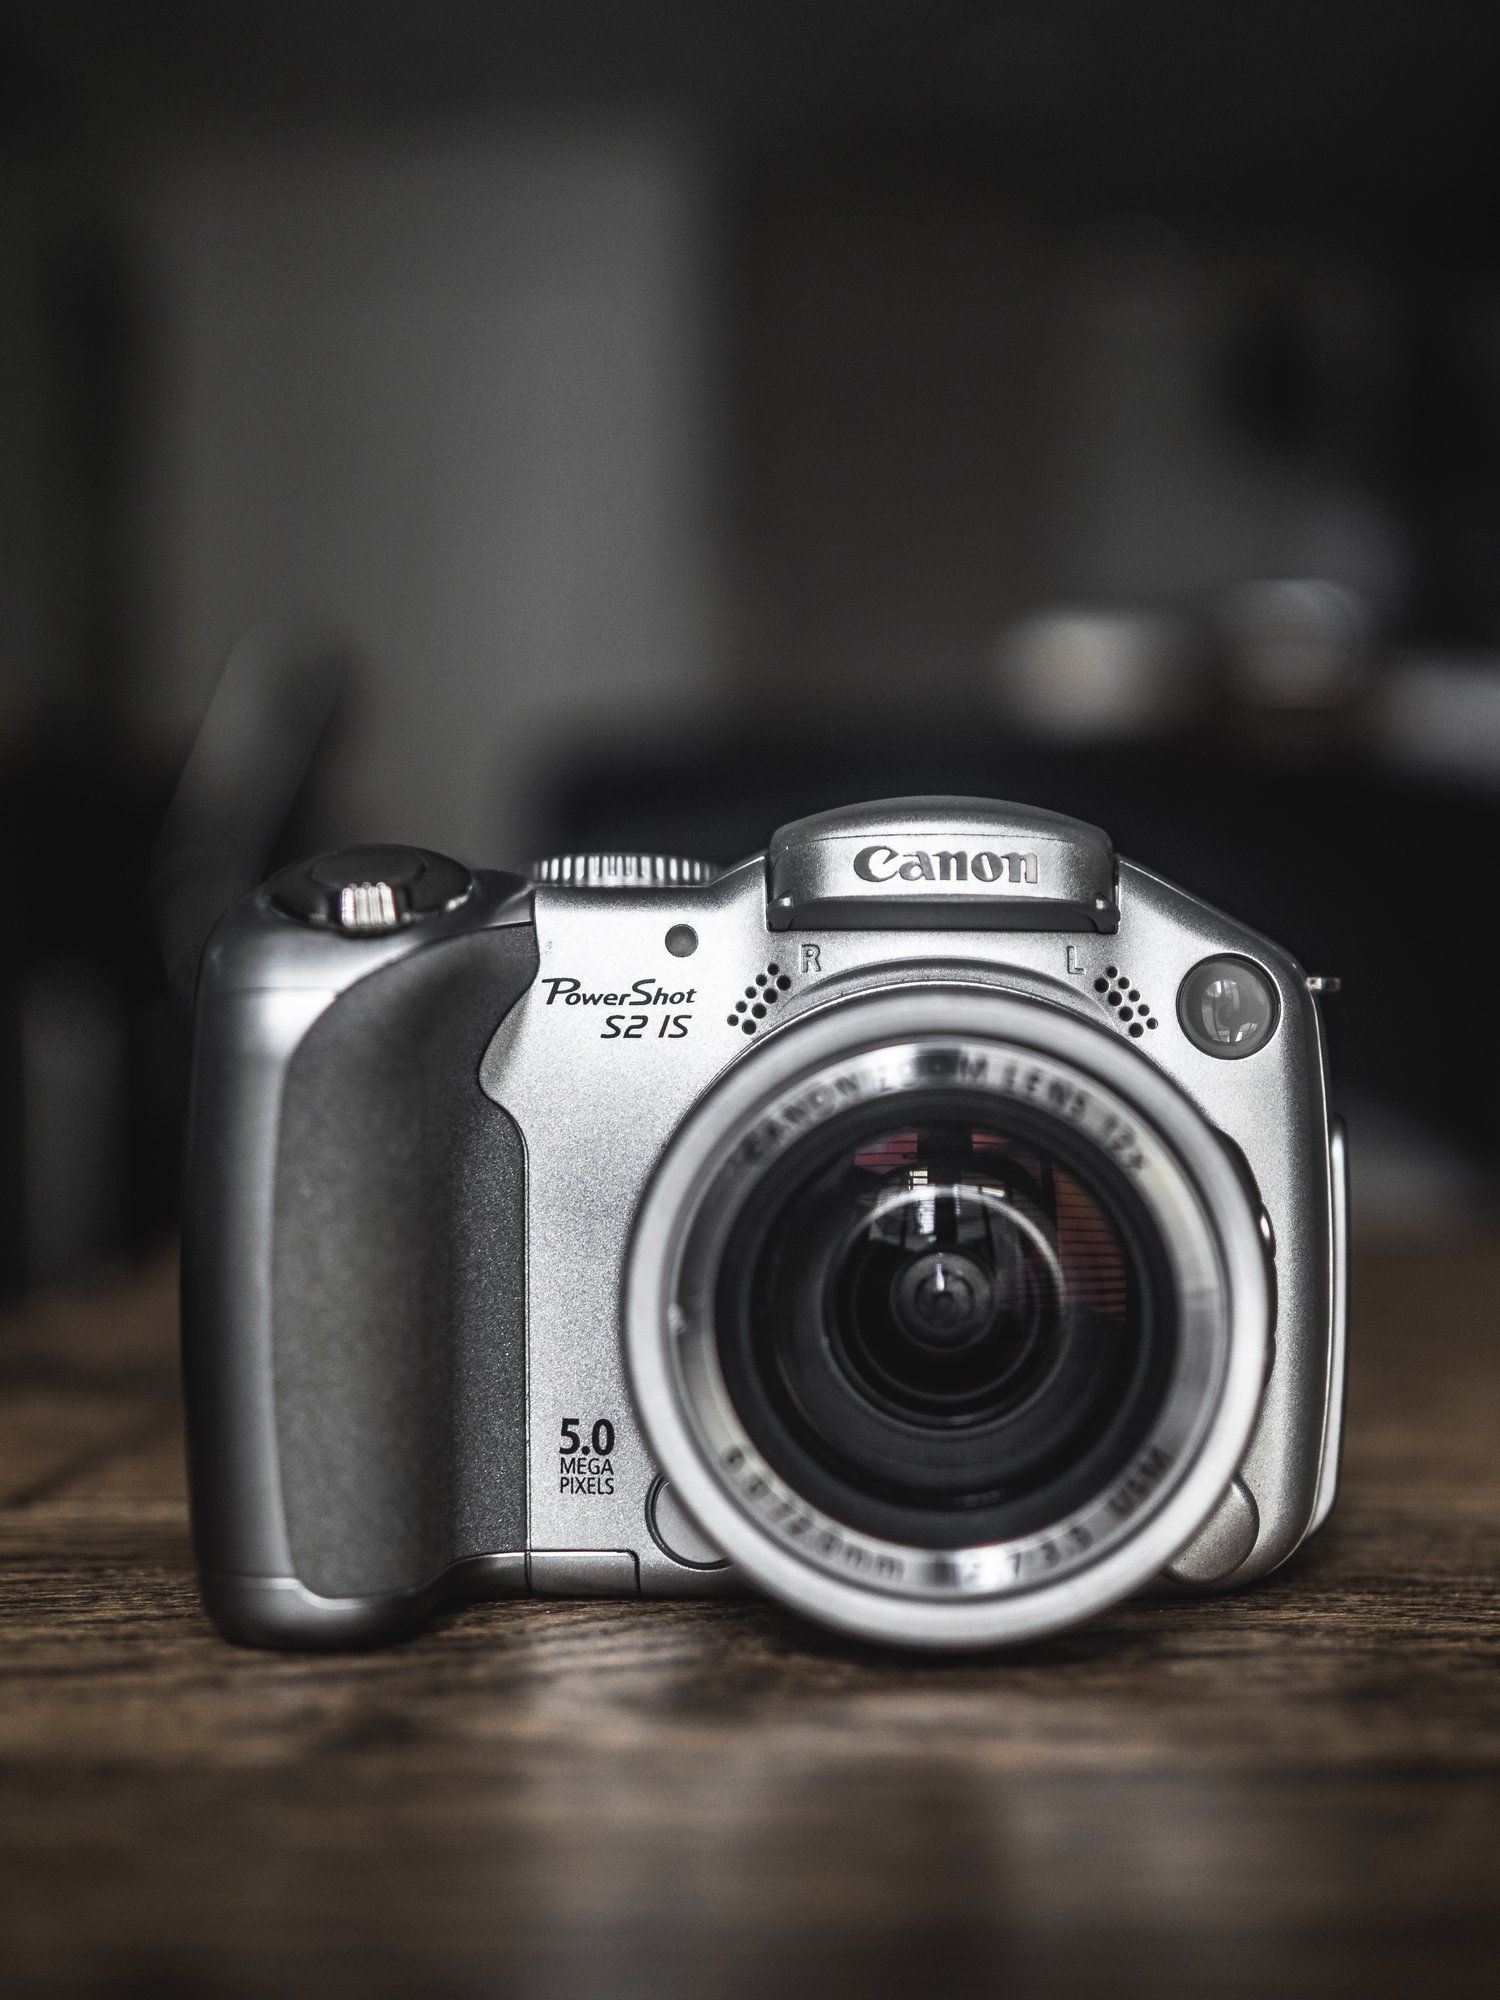 Are Old Digital Cameras Still Viable In 2018 Canon Powershot S2 Is Jay Mclaughlin Photographer Powershot Canon Powershot Fuji Finepix